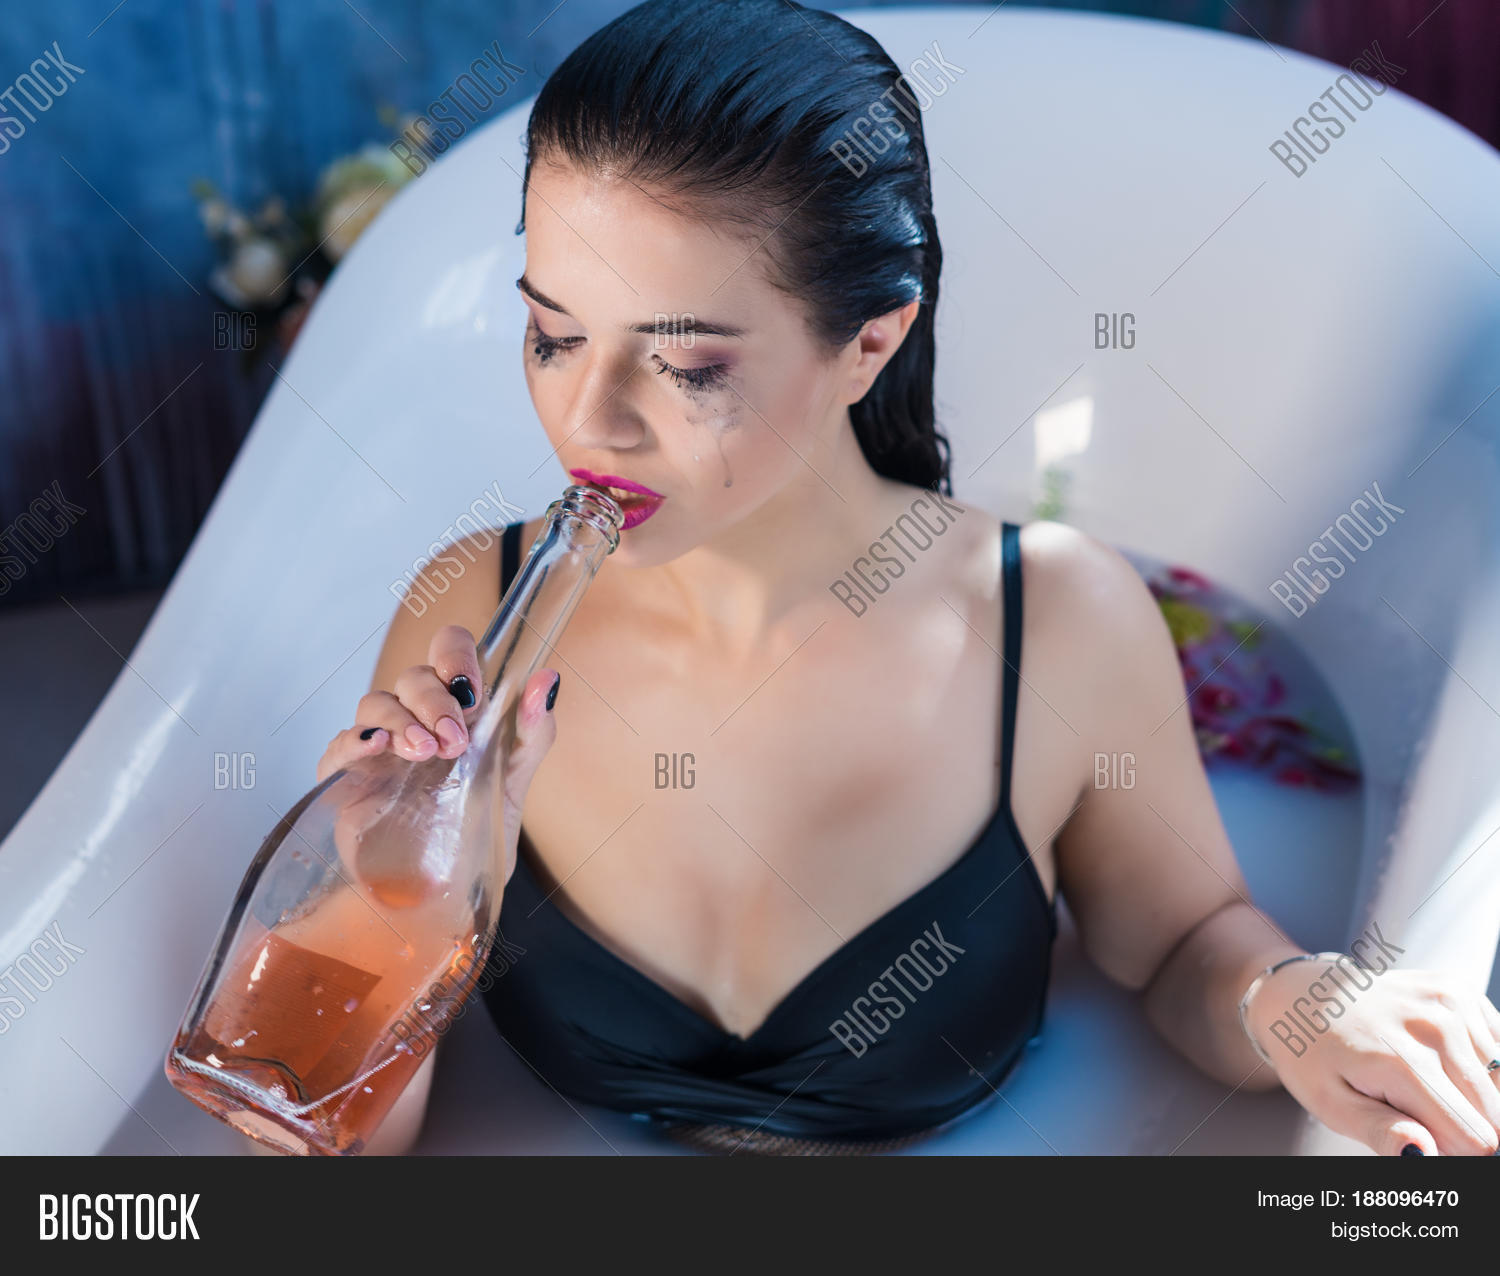 sexy brunette drunk woman relaxing image & photo | bigstock